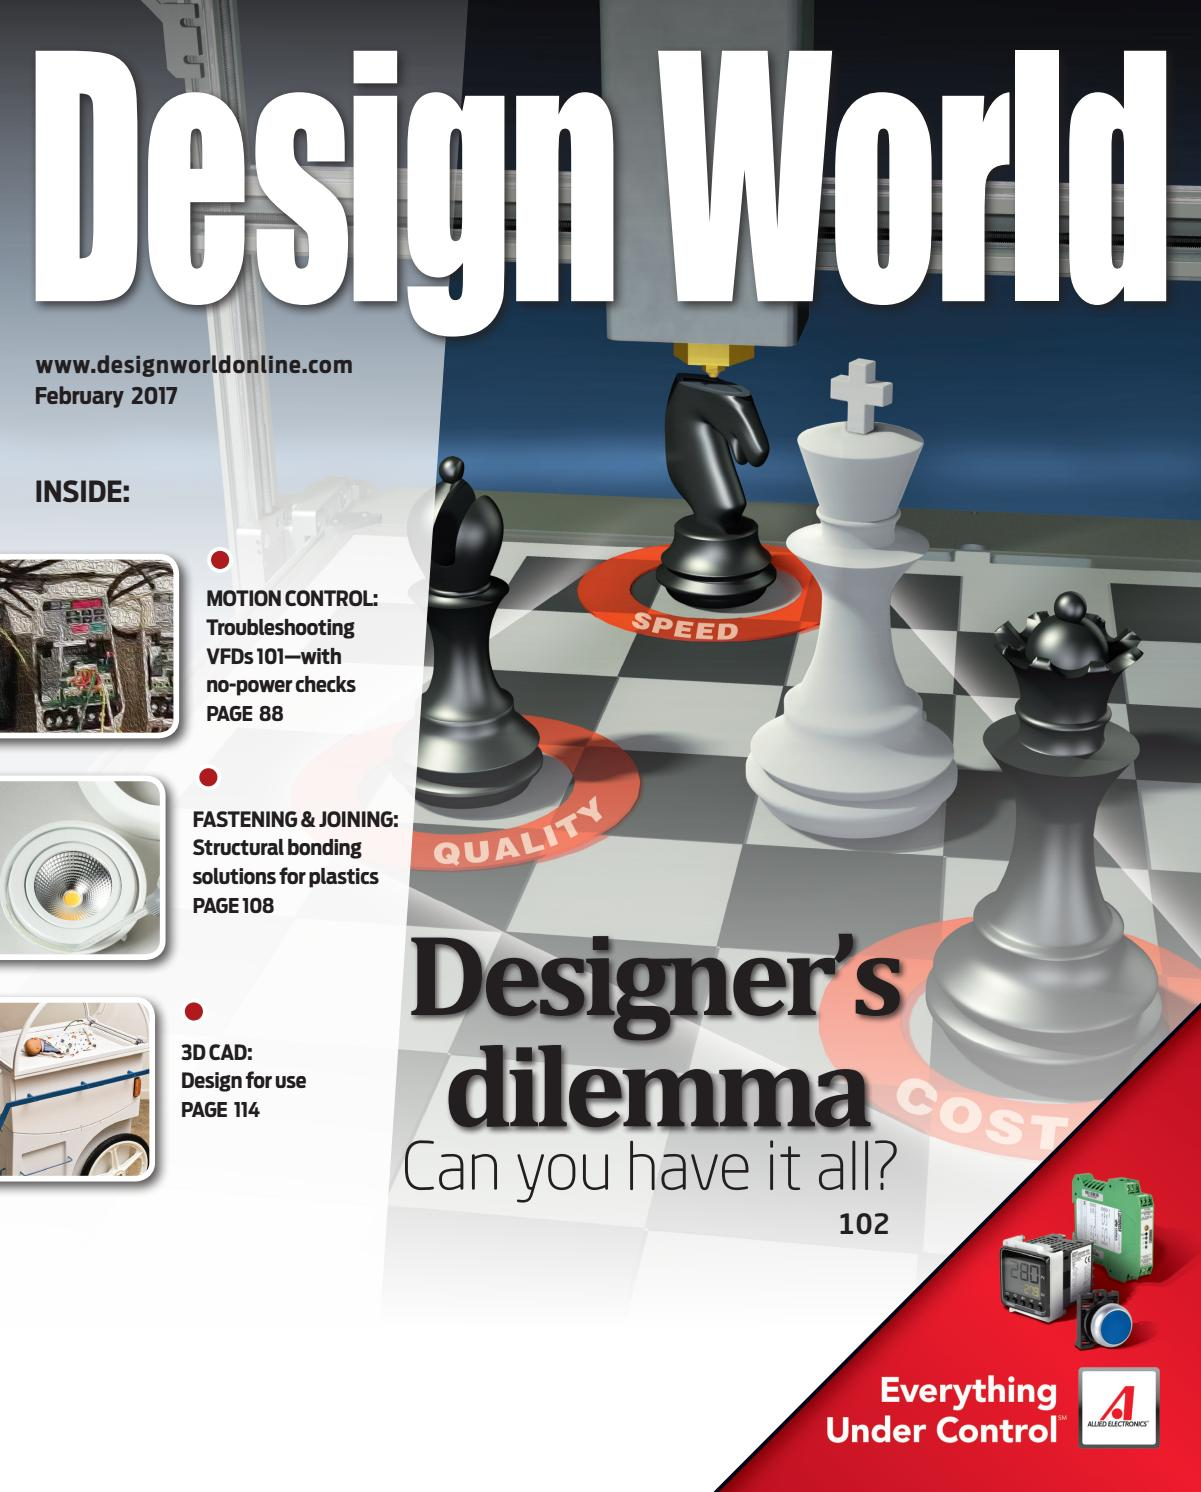 Design World February 2017 By Wtwh Media Llc Issuu Hard Wiring Zsi Oven Including Ge Electric Wall Parts